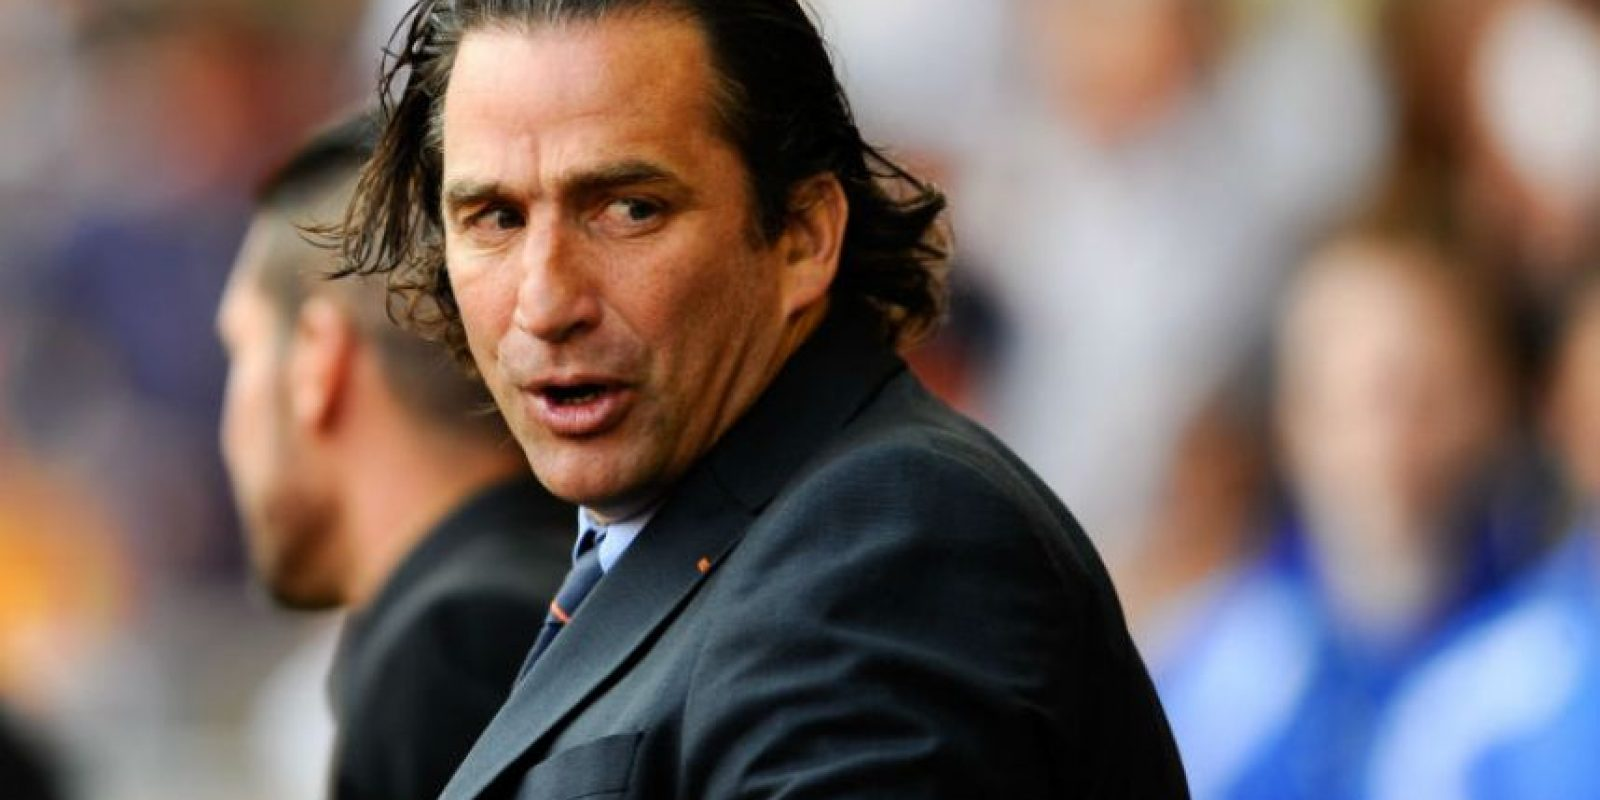 ¿Quién es Juan Antonio Pizzi? Foto: Getty Images